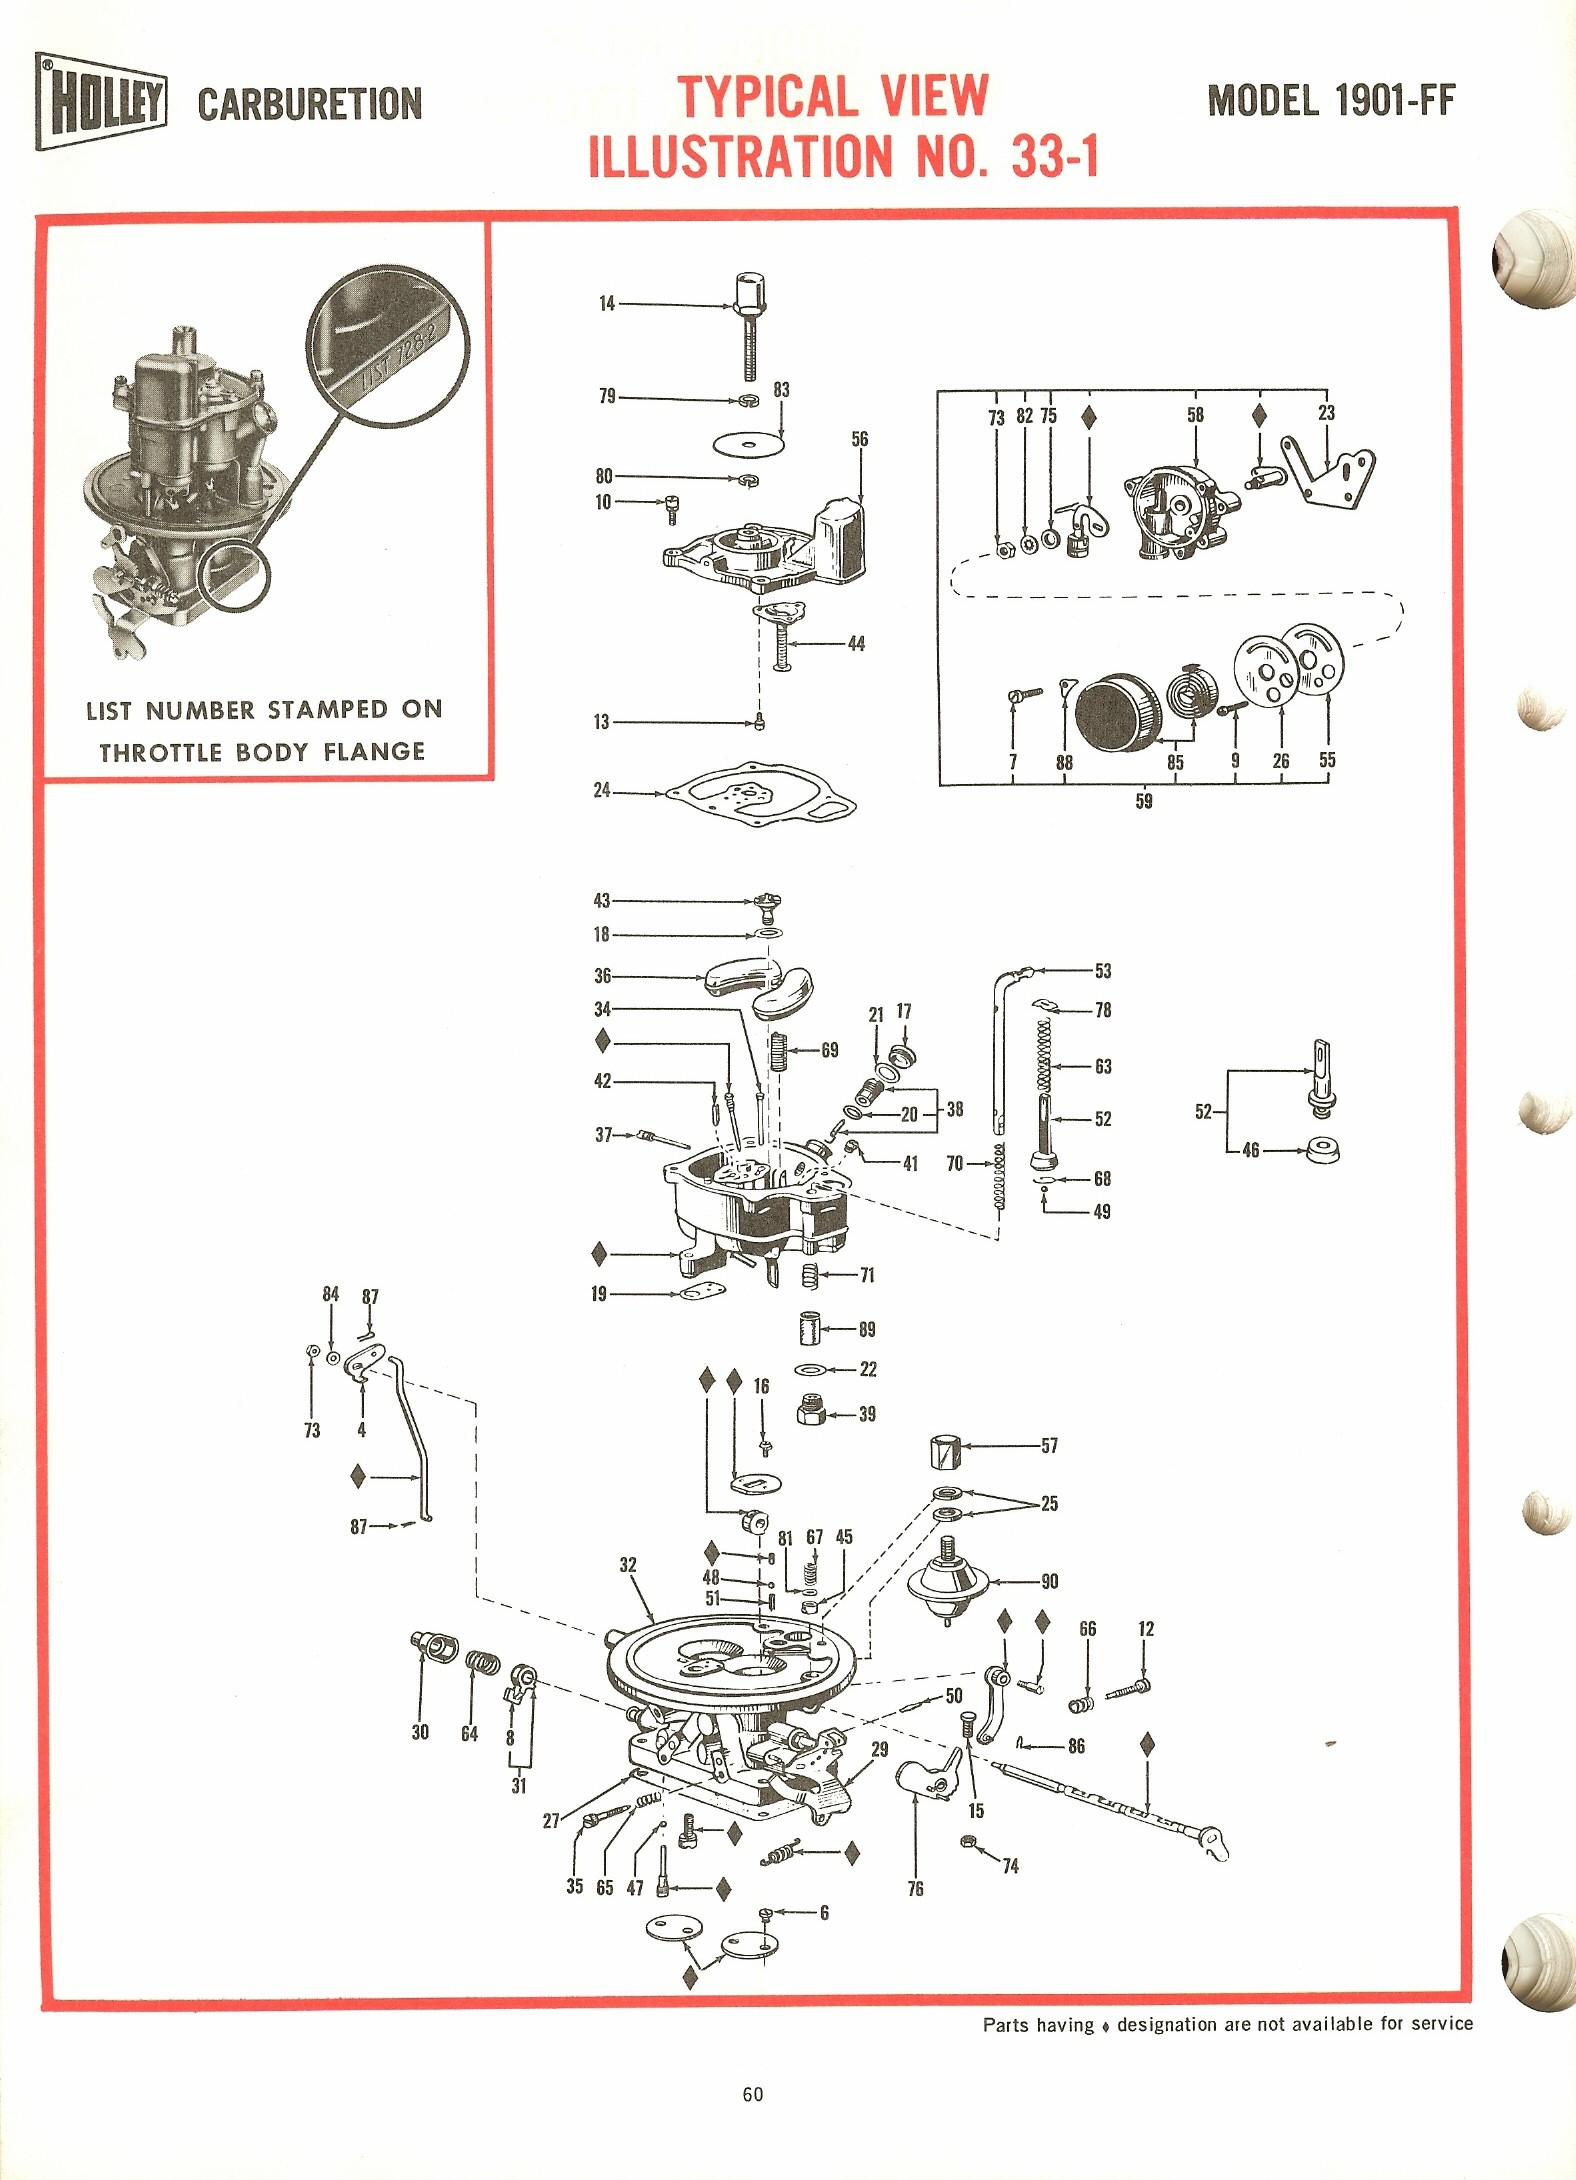 Holley 1901ff Exploded Diagrams